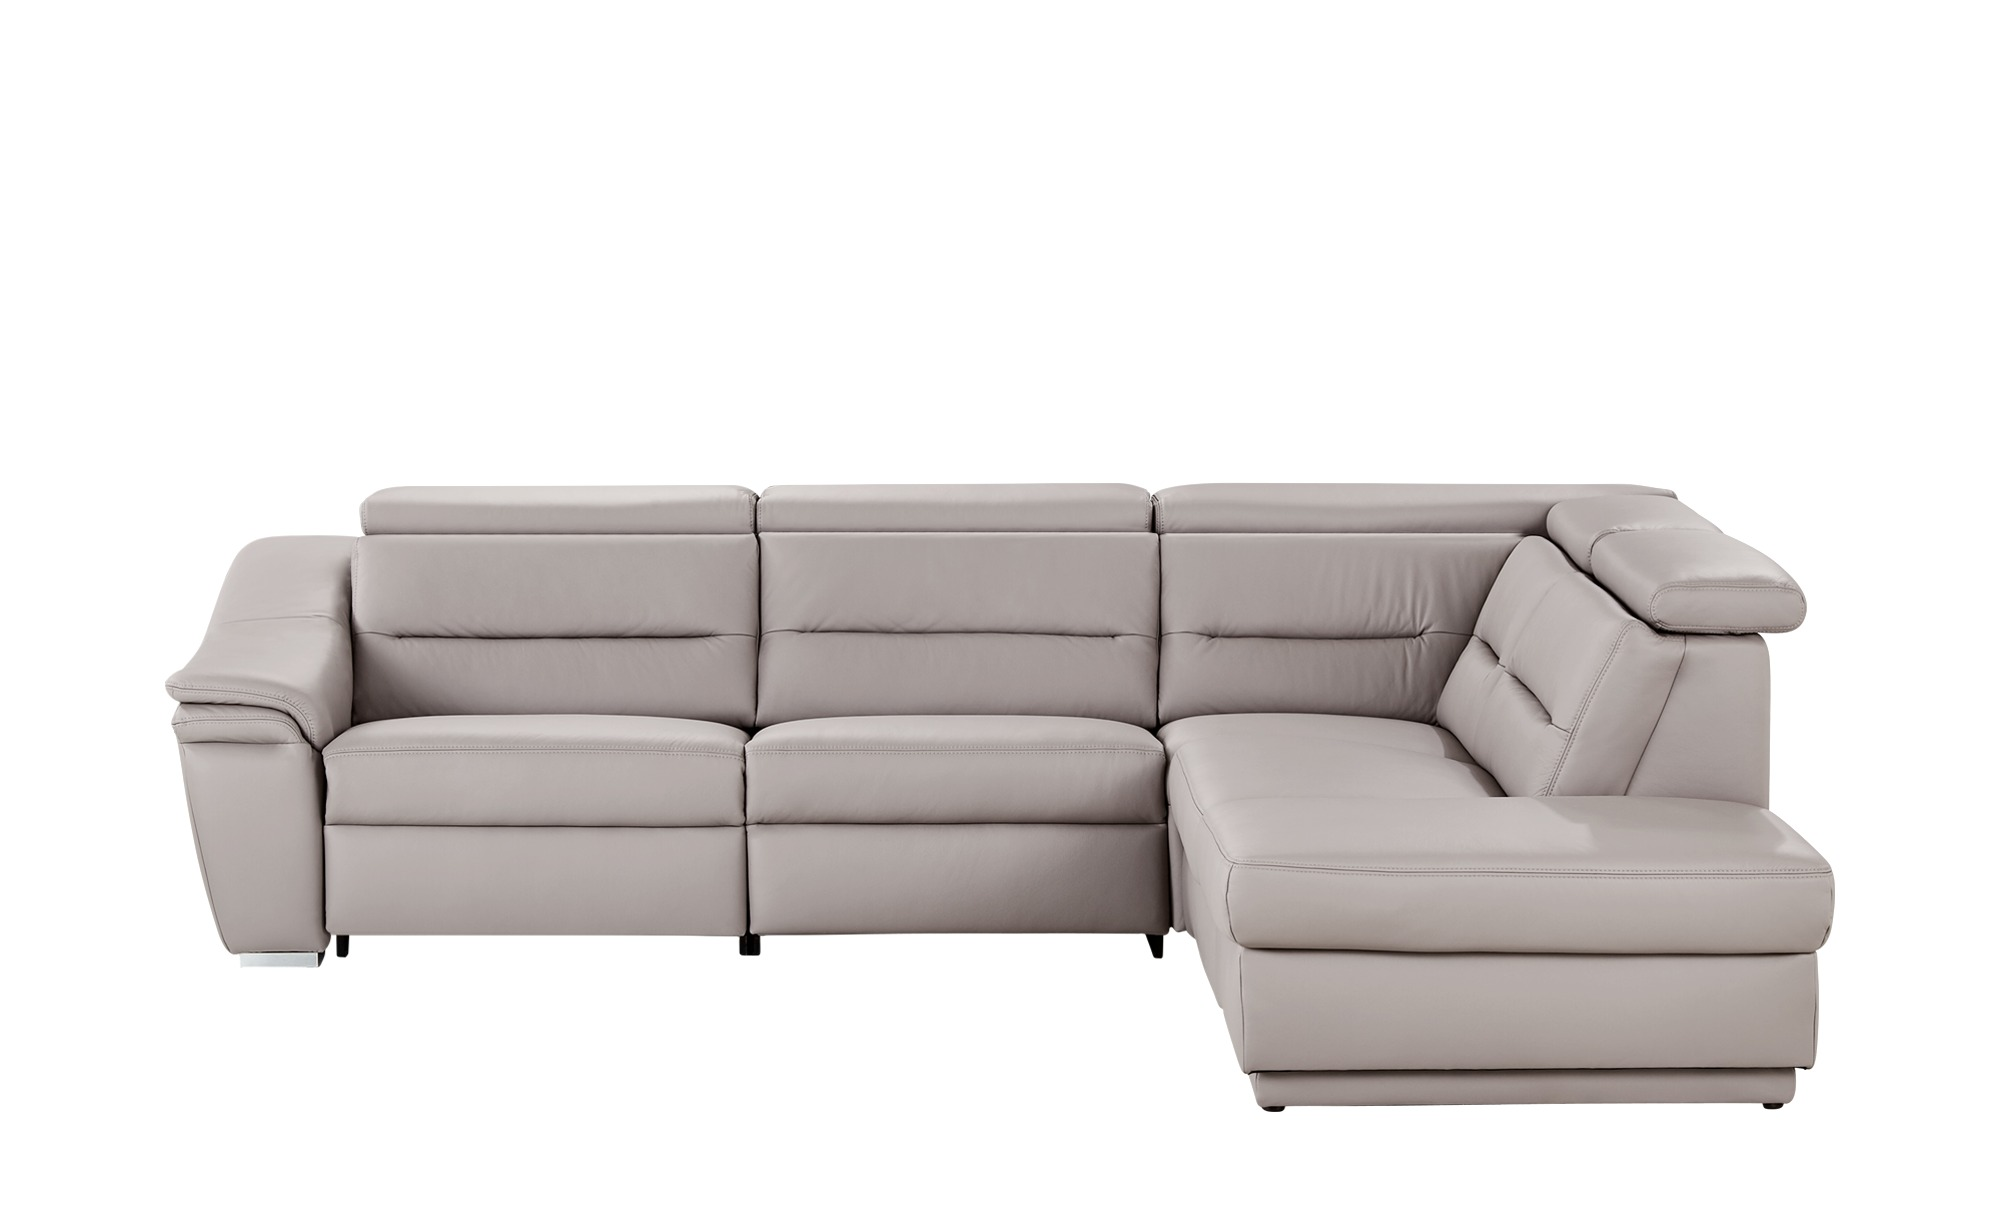 meinsofa ecksofa isabel breite h he 84 cm grau online kaufen bei woonio. Black Bedroom Furniture Sets. Home Design Ideas